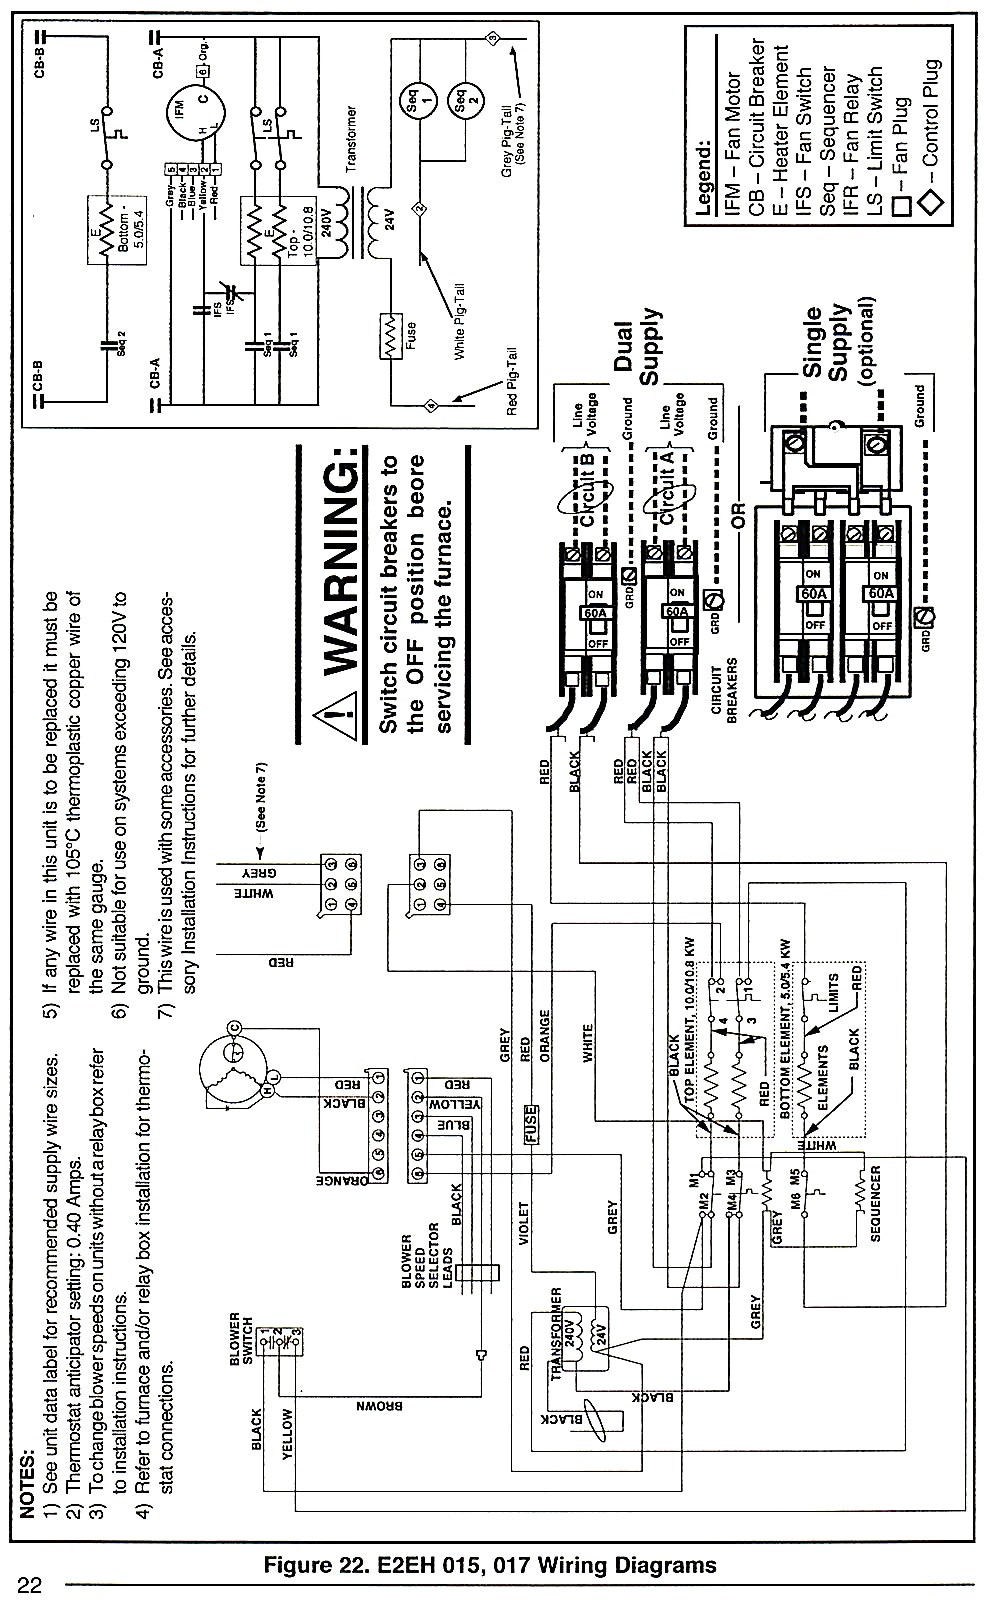 Intertherm Electric Furnace Wiring Diagram Gorgeous Model For - Intertherm Electric Furnace Wiring Diagram